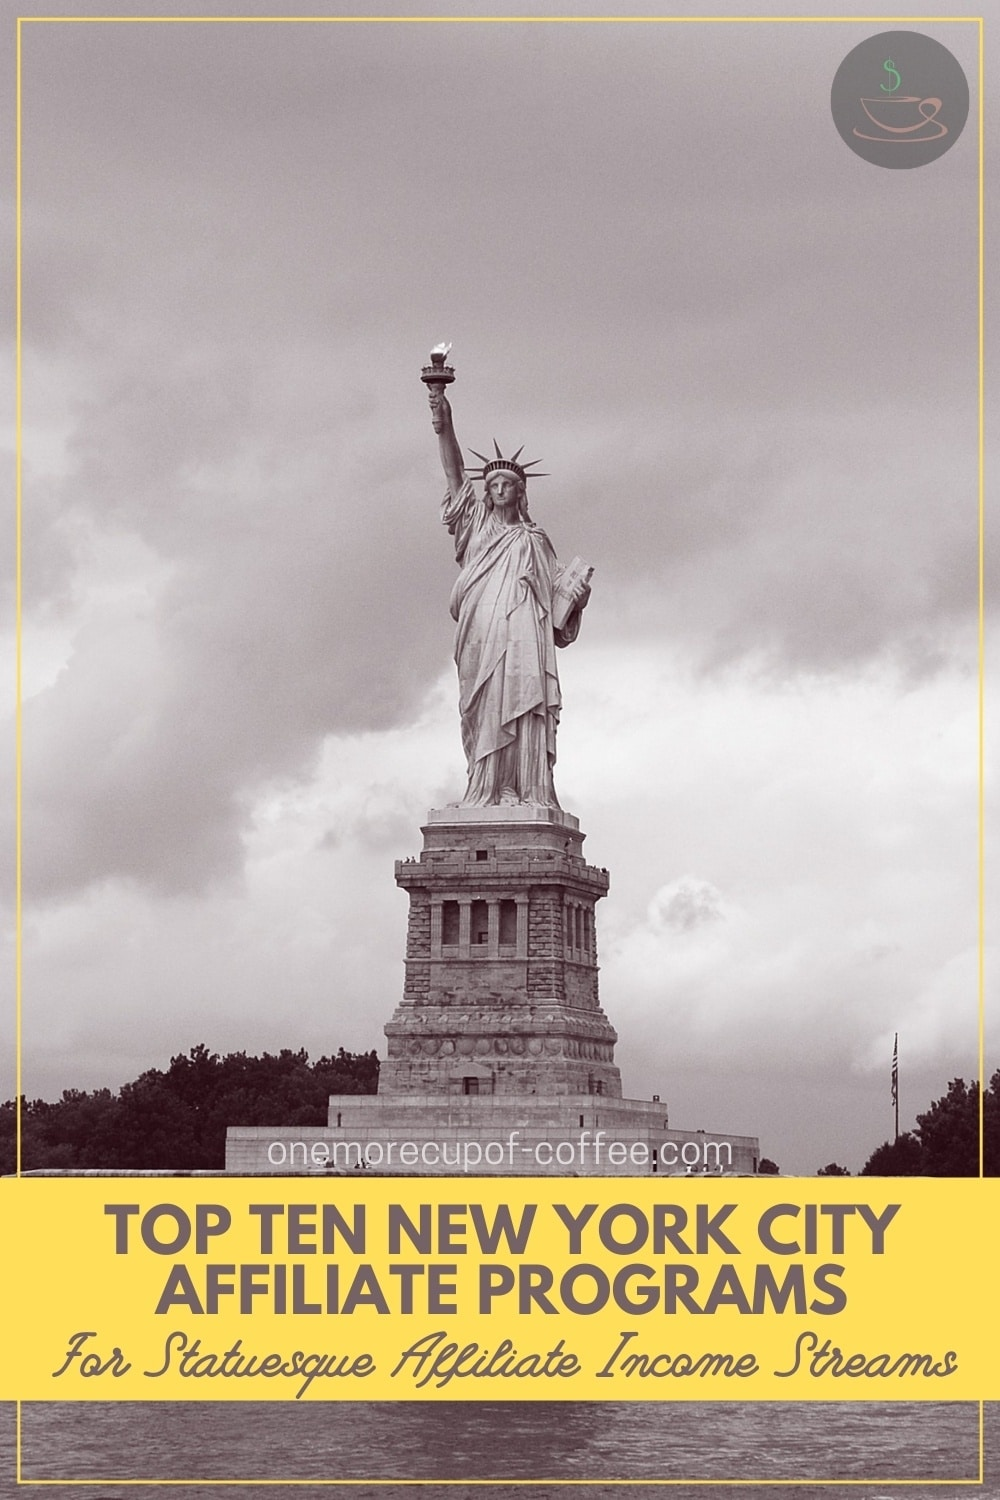 """black and white image of the Statue of Liberty in New York, with text overlay in yellow banner """"Top Ten New York City Affiliate Programs For Statuesque Affiliate Income Streams"""""""